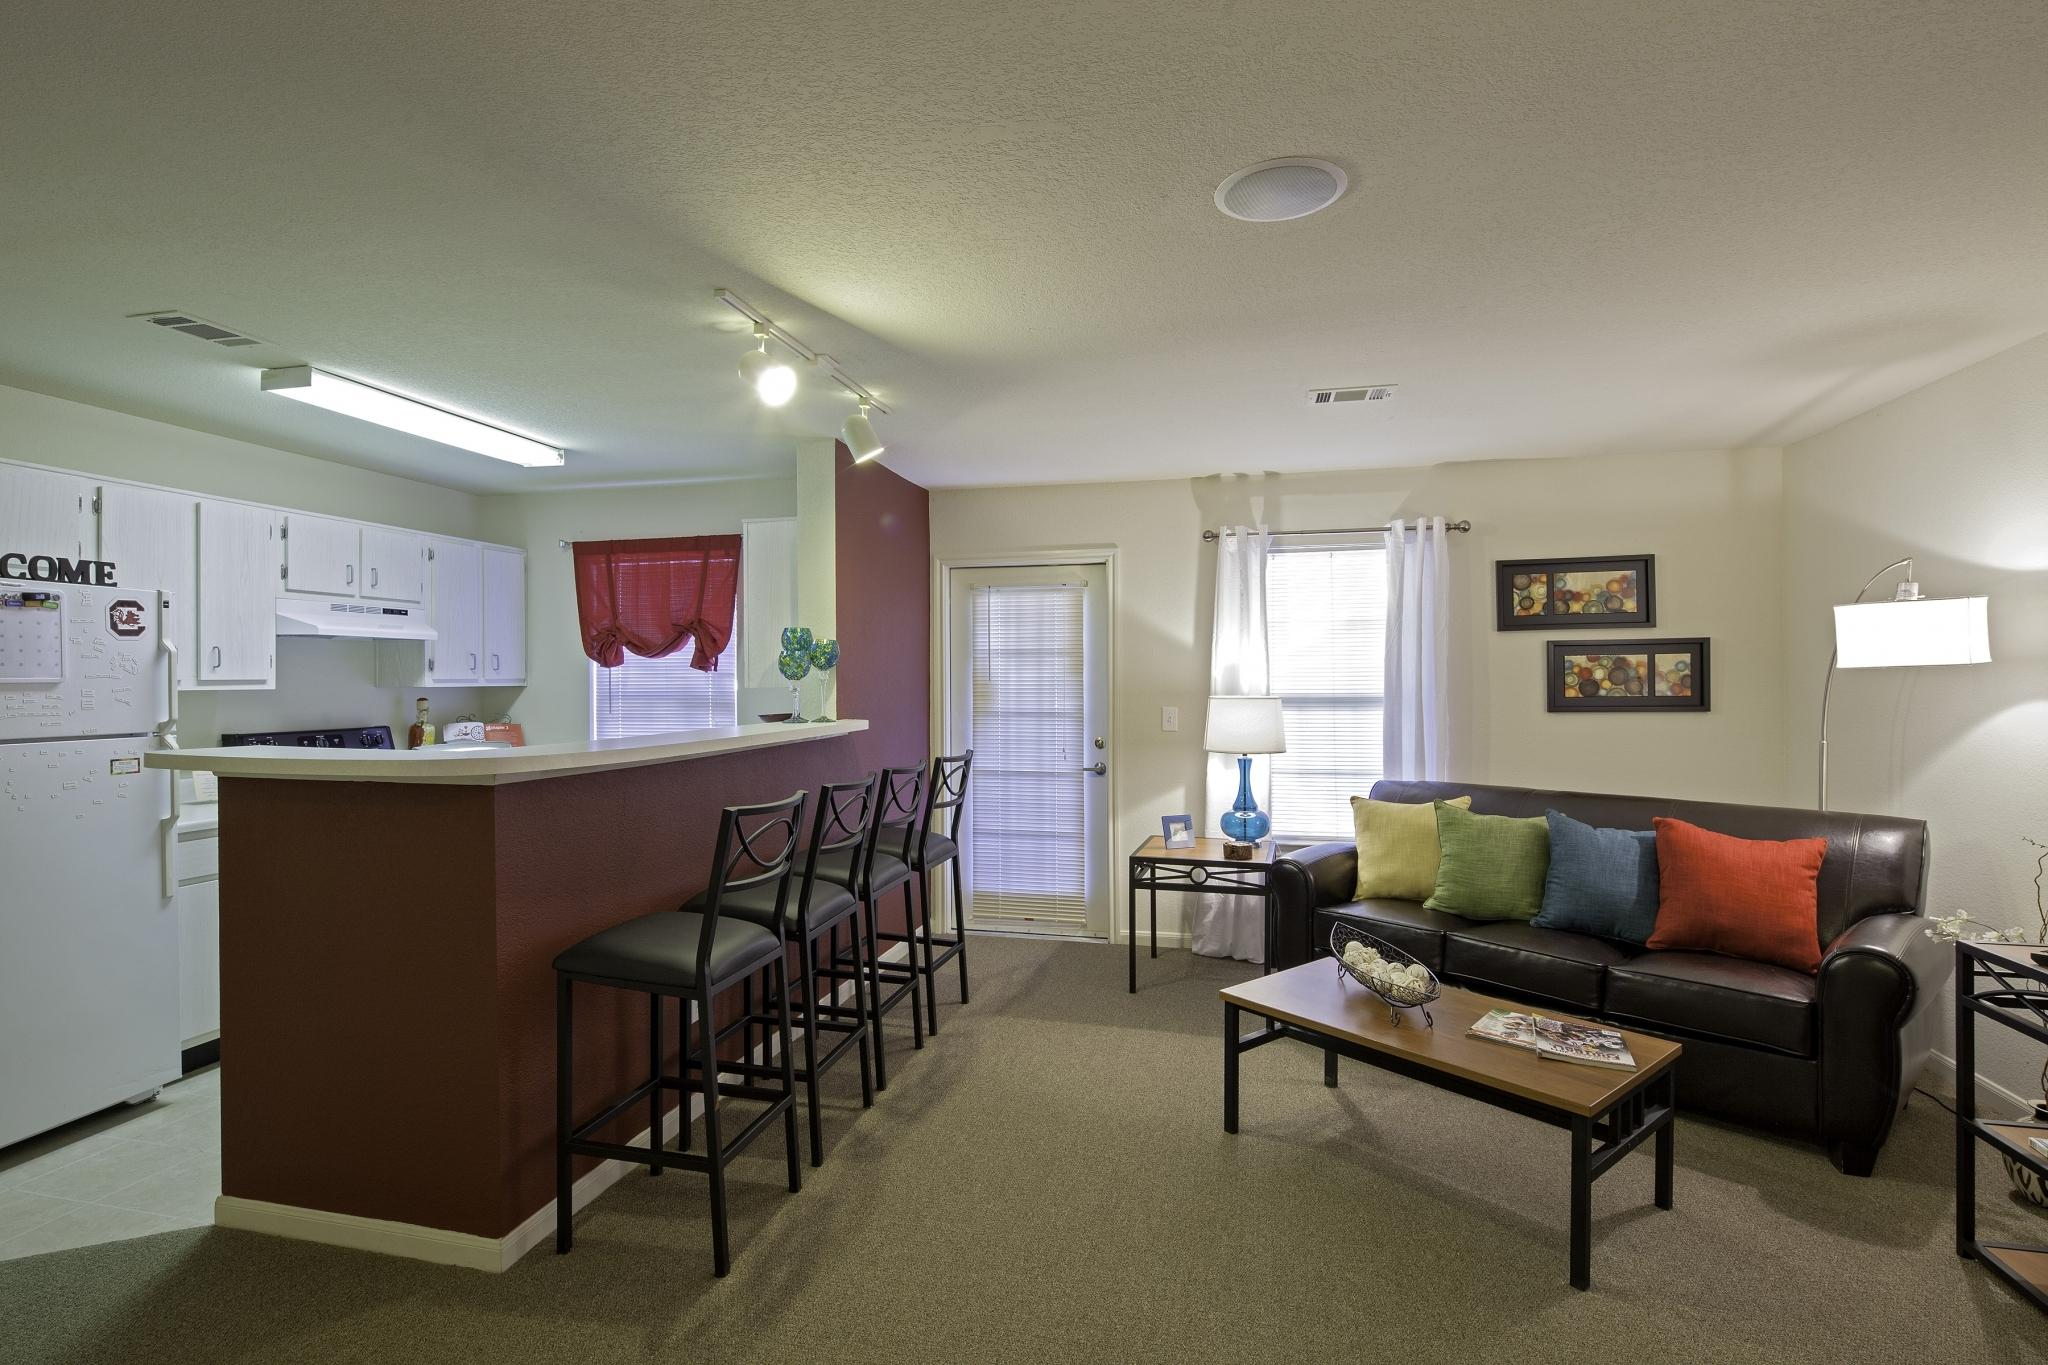 Cayce Cove | USC Student Housing That Can't Be Beat